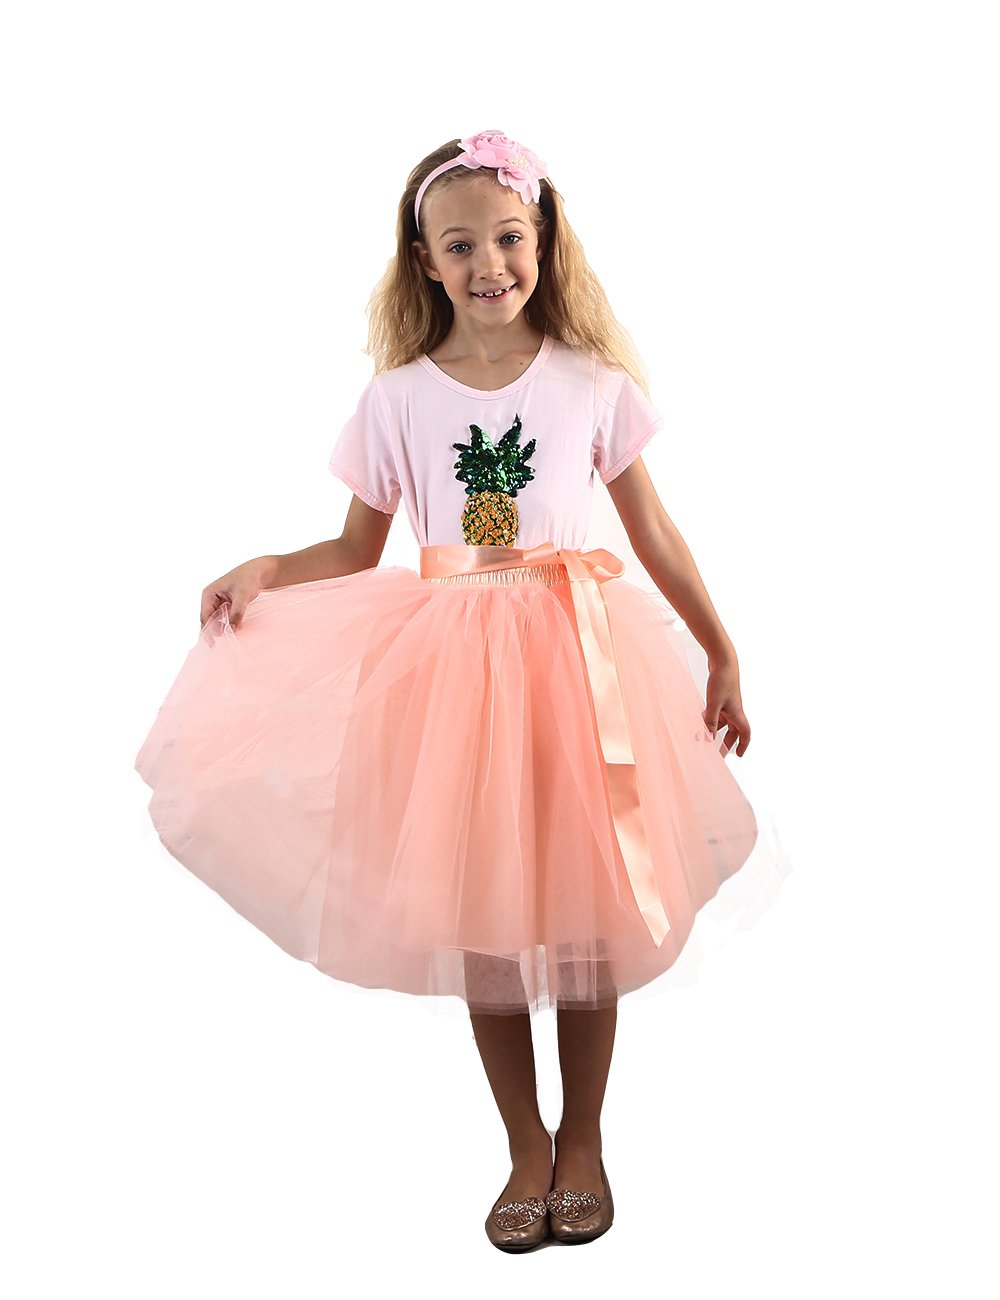 Zcaynger Girls Skirt Tutu Dancing Dress 5-Layer Fluffy with Ribbon by Zcaynger (Image #1)